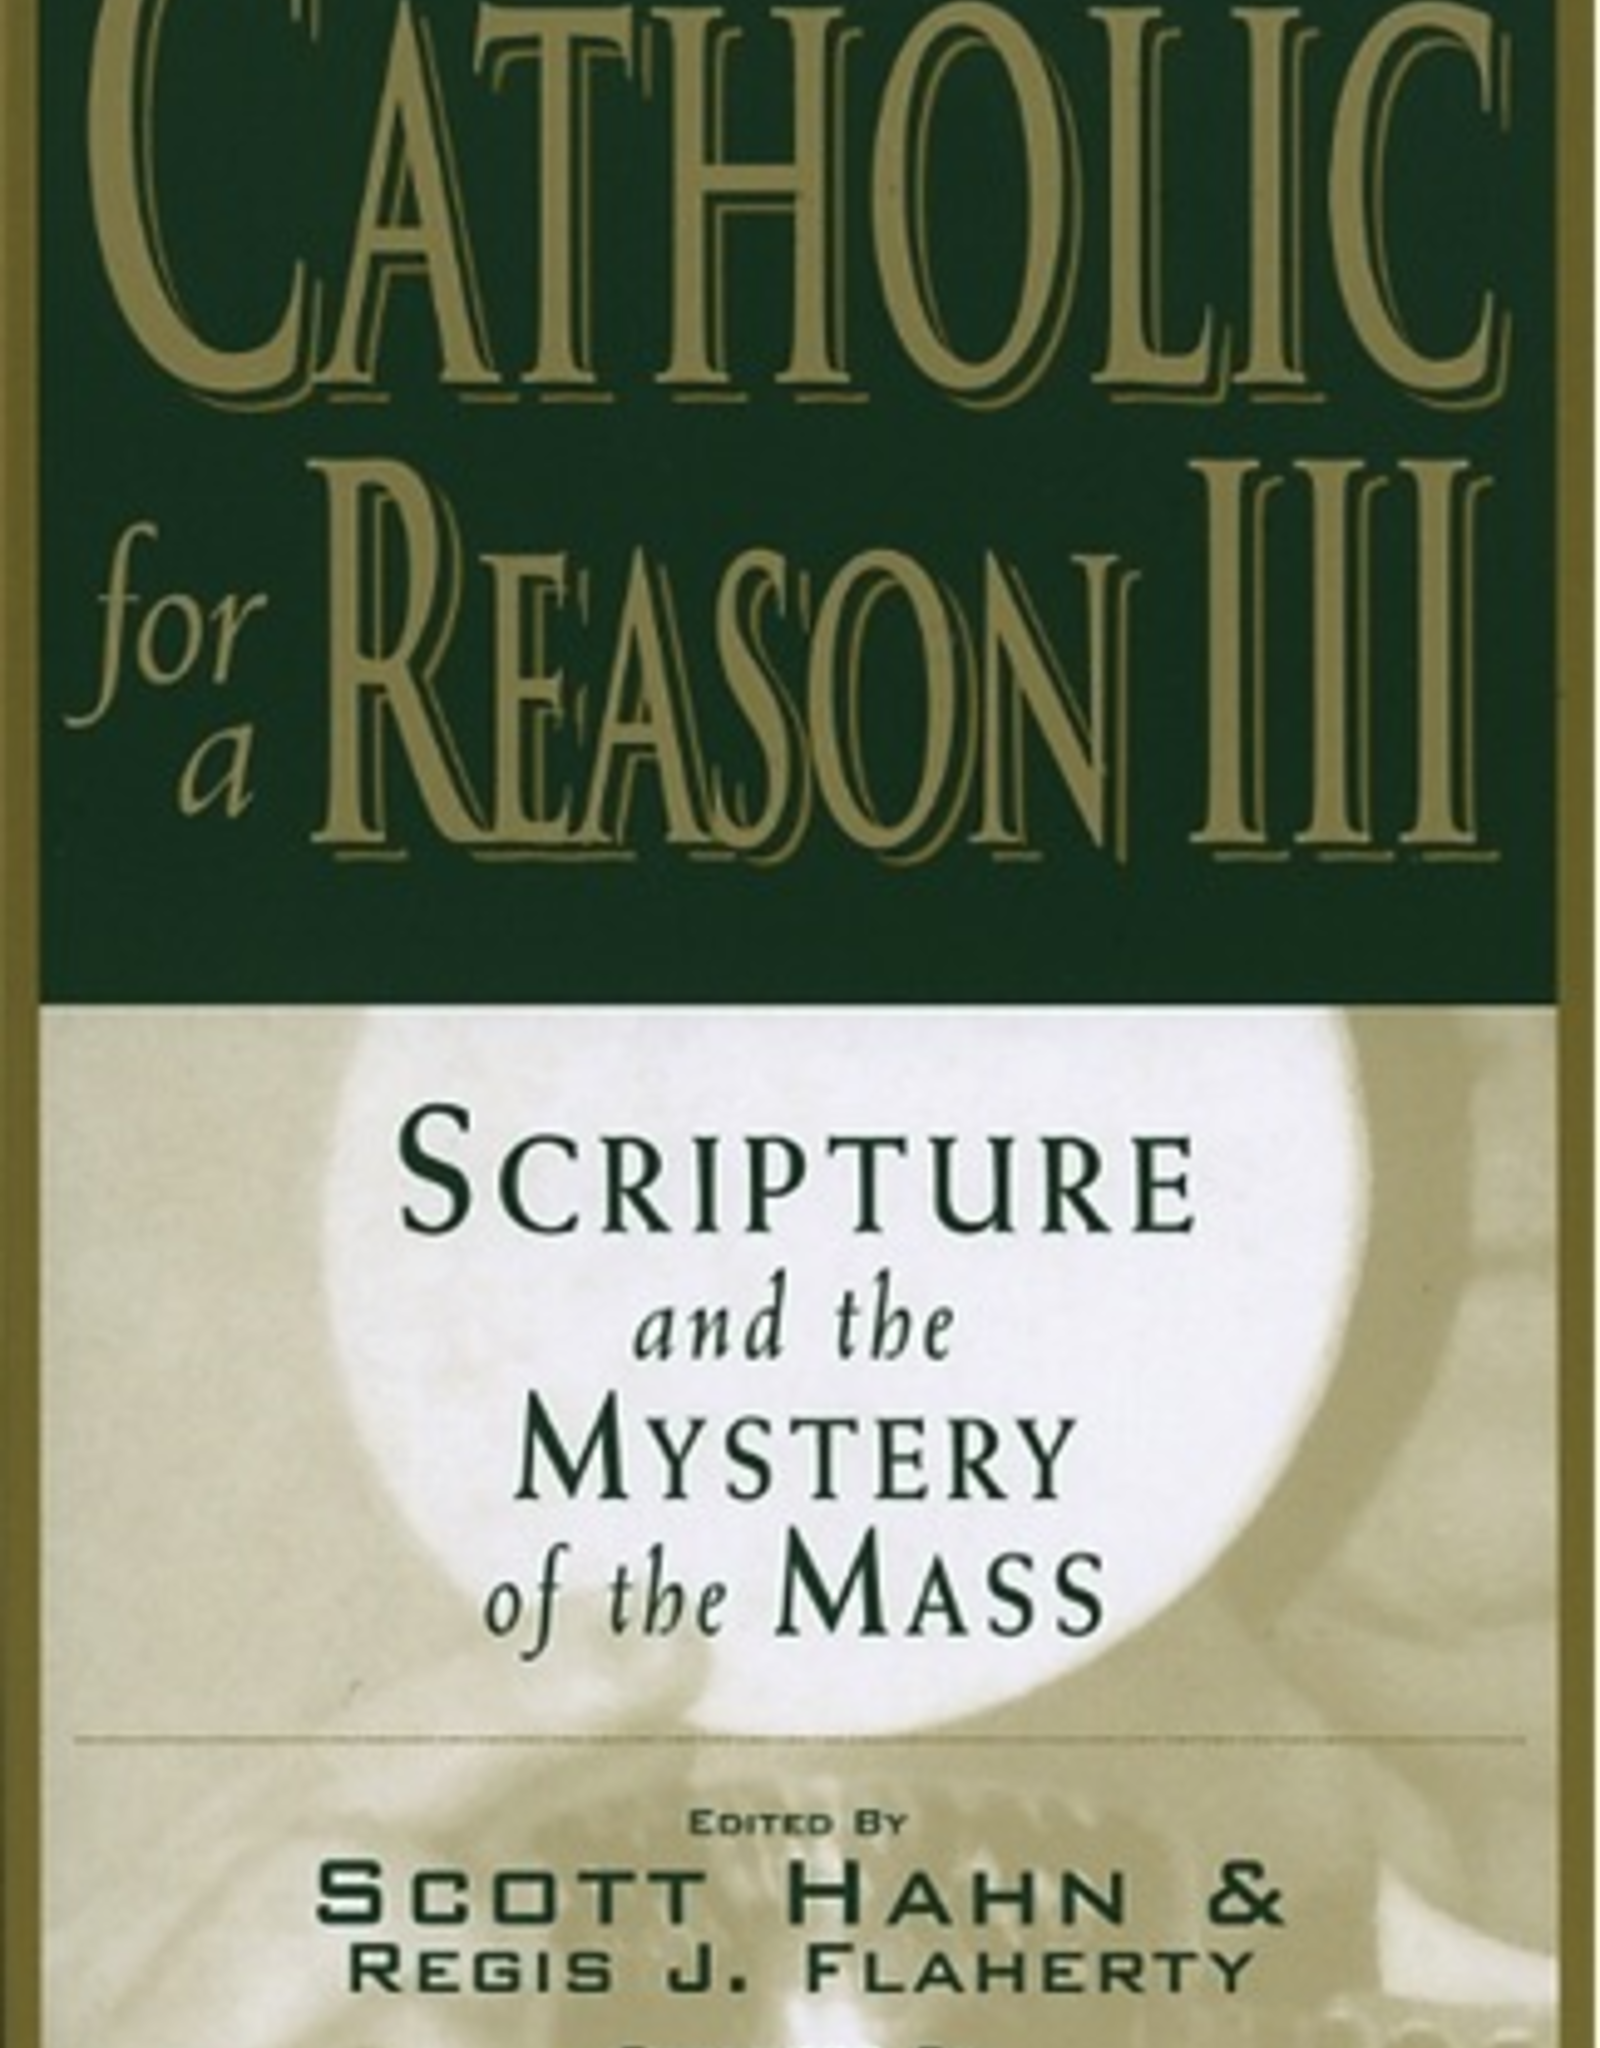 Emmaus Road Catholic for A Reason III:  Scripture and the Mystery of the Mass, Ed. Scott Hahn & Regis Flaherty (paperback)